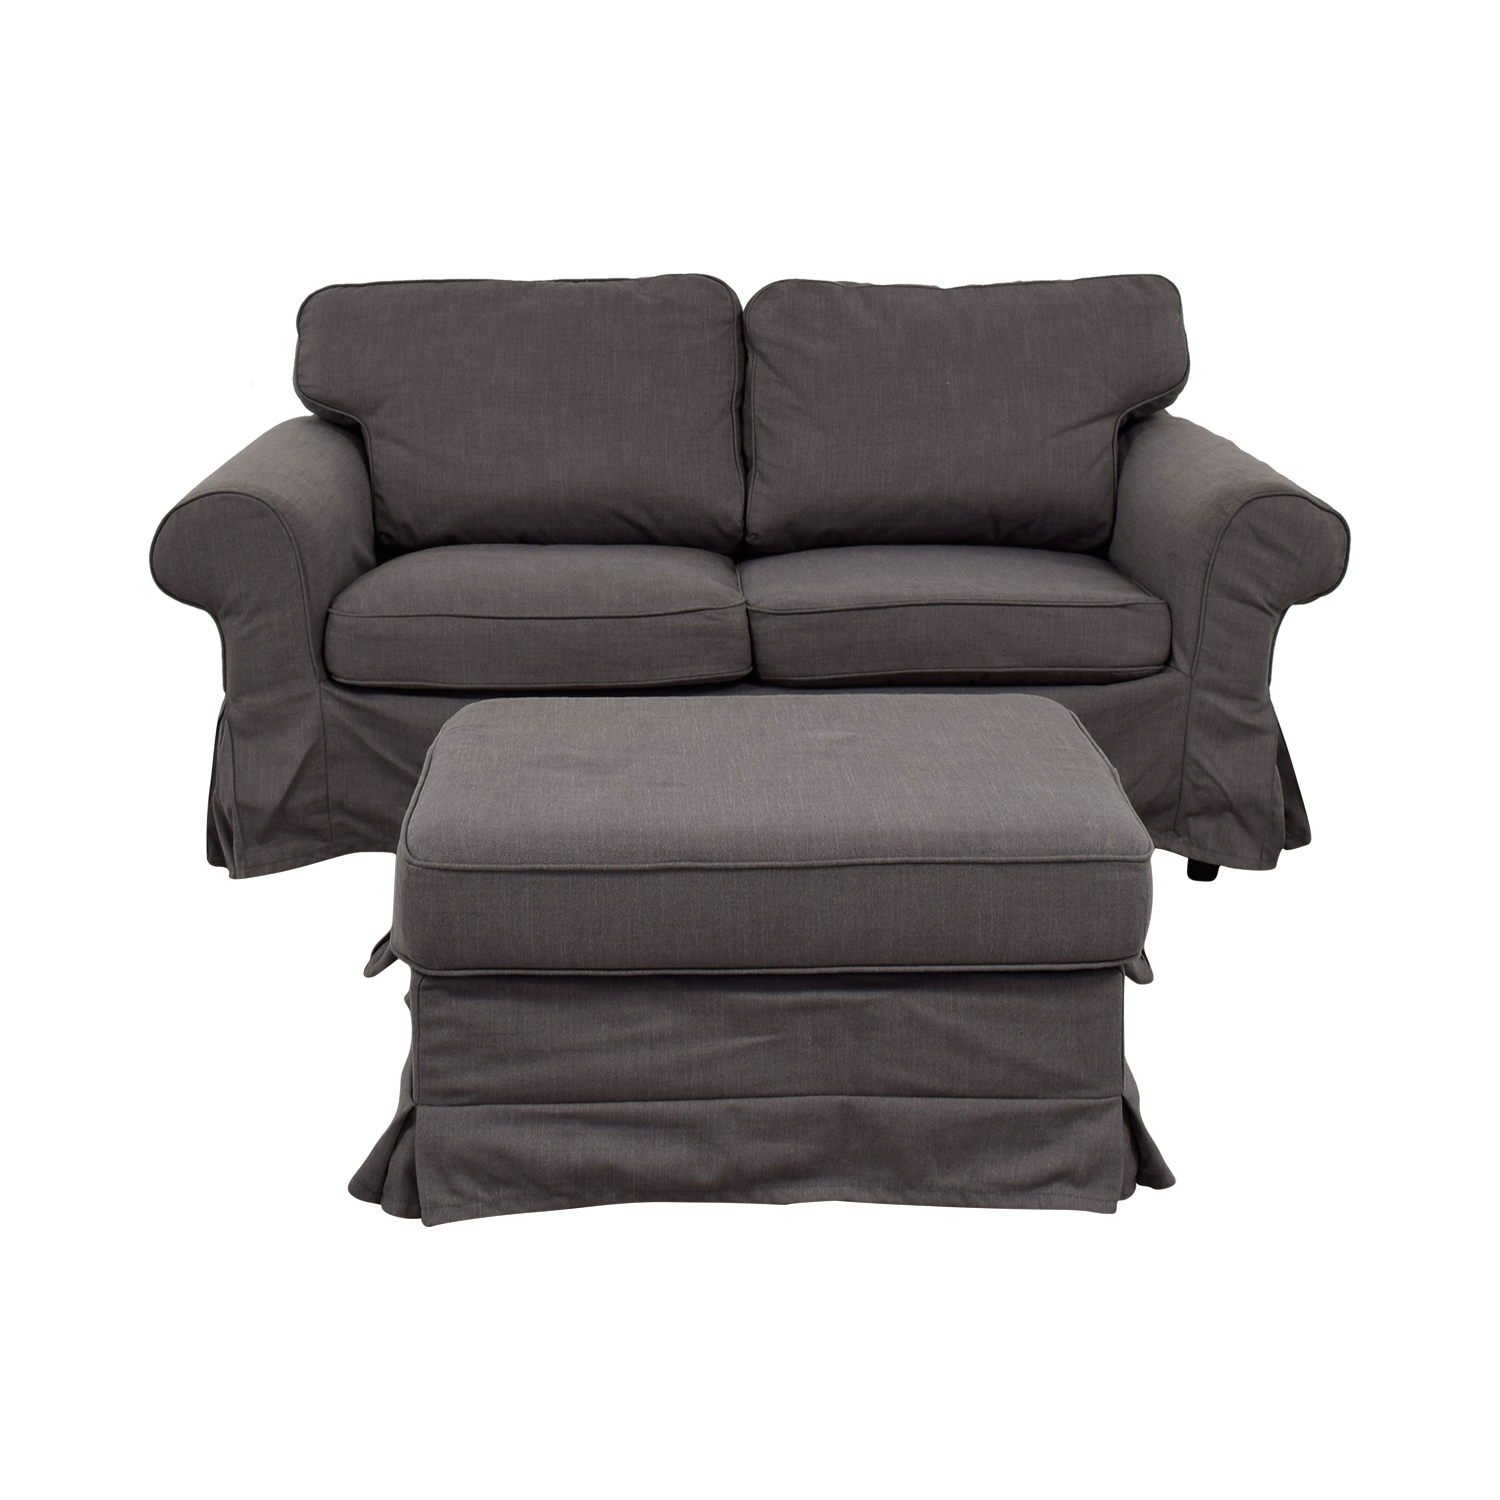 IKEA IKEA Grey Loveseat and Ottoman Loveseats